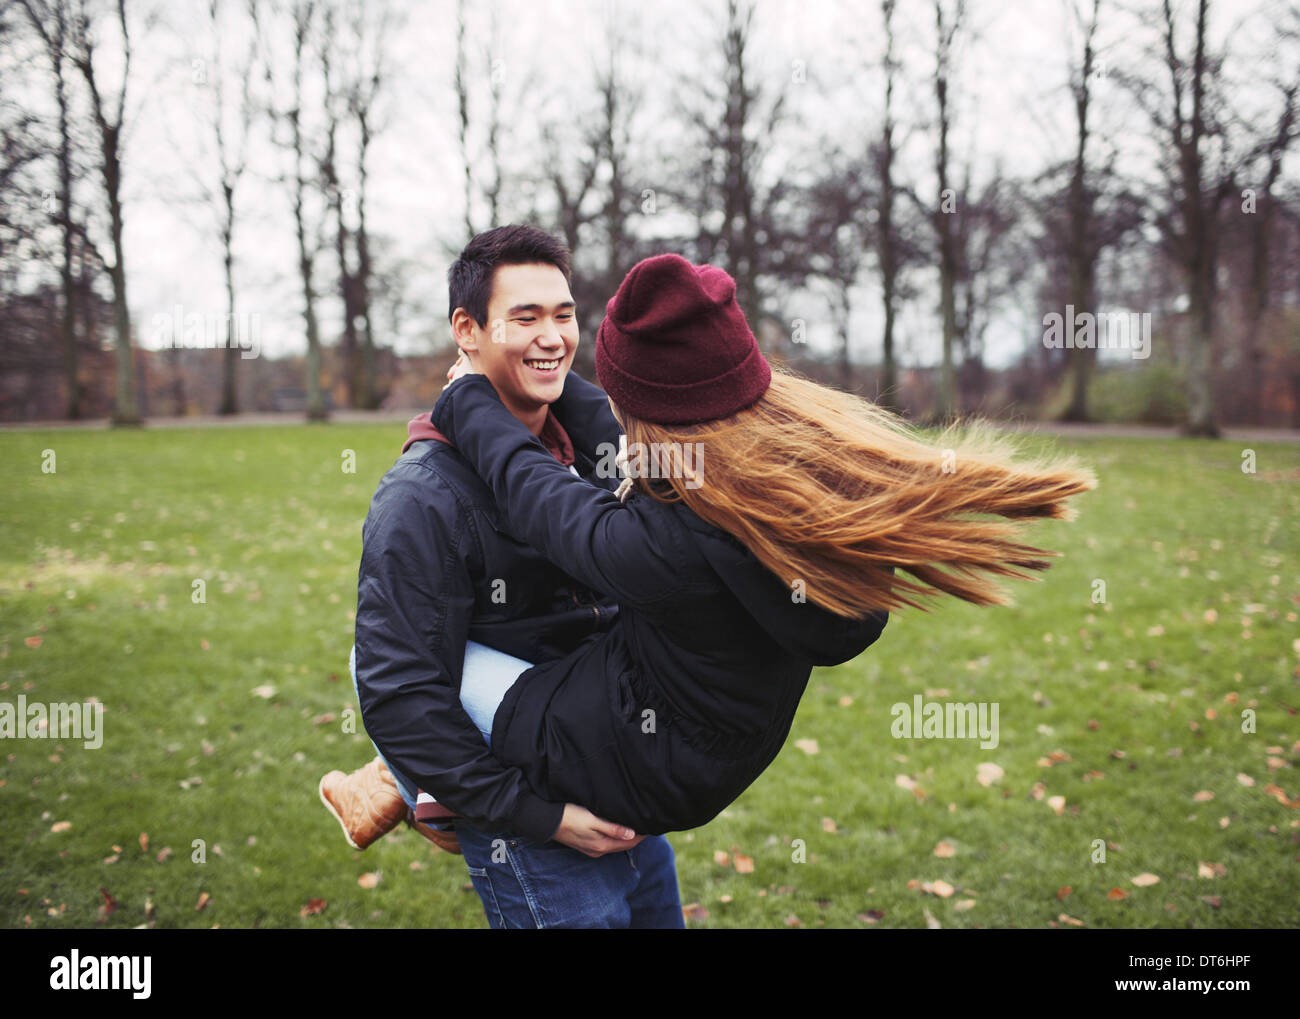 Handsome young man carrying his girlfriend in the park. Asian young couple enjoying themselves outdoors. - Stock Image